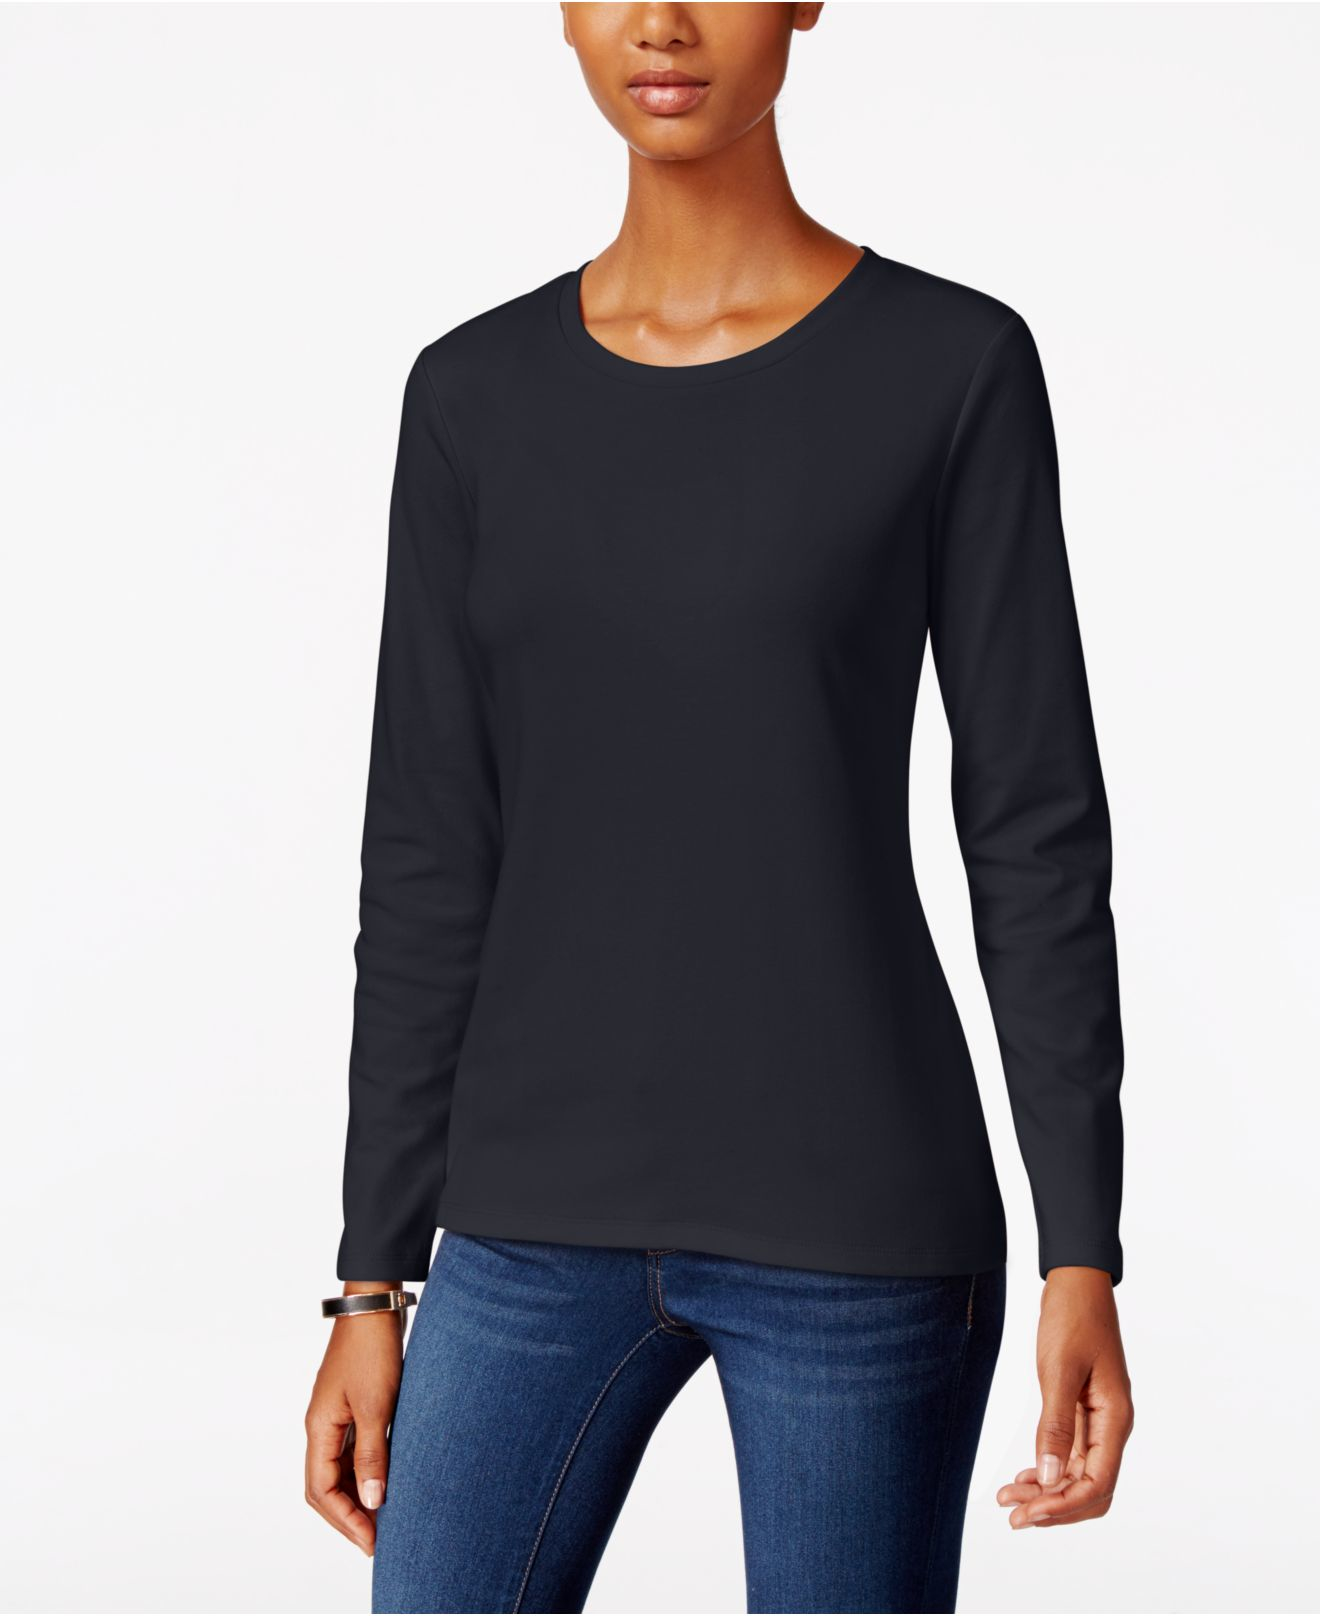 Lyst - Style & co. Long-sleeve Crew-neck T-shirt in Blue